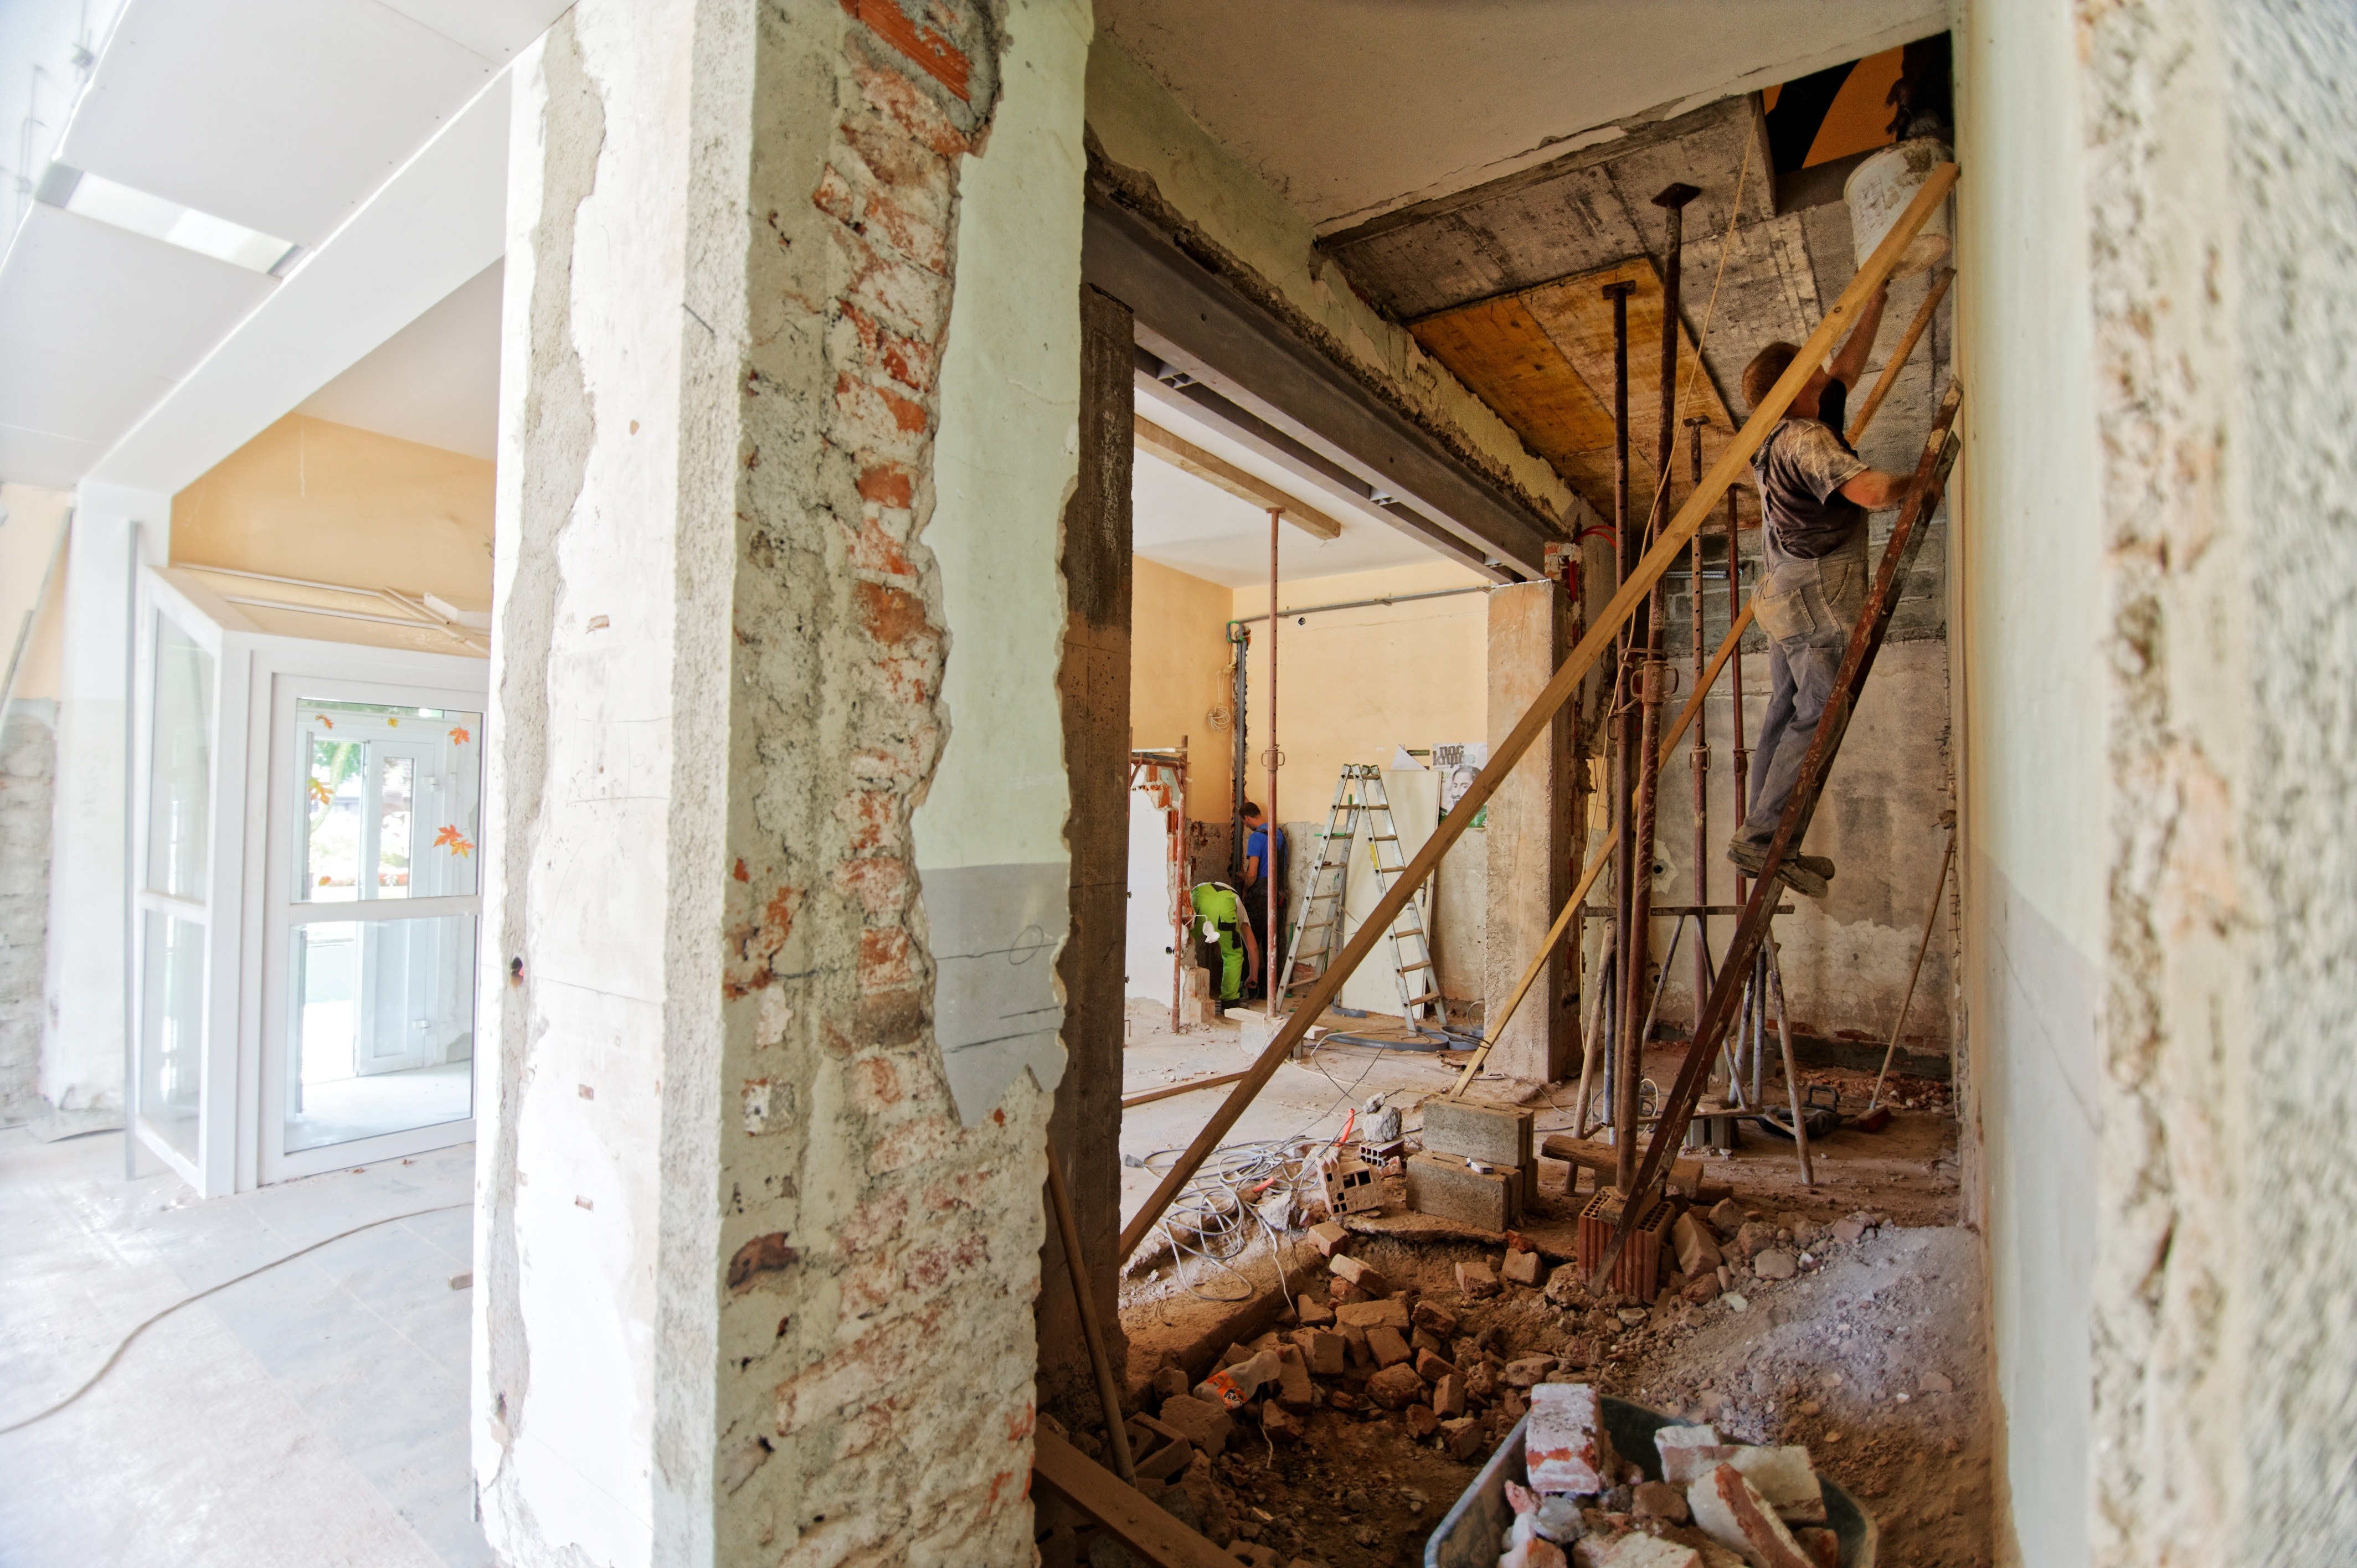 How to renovate a property and still be environmentally friendly